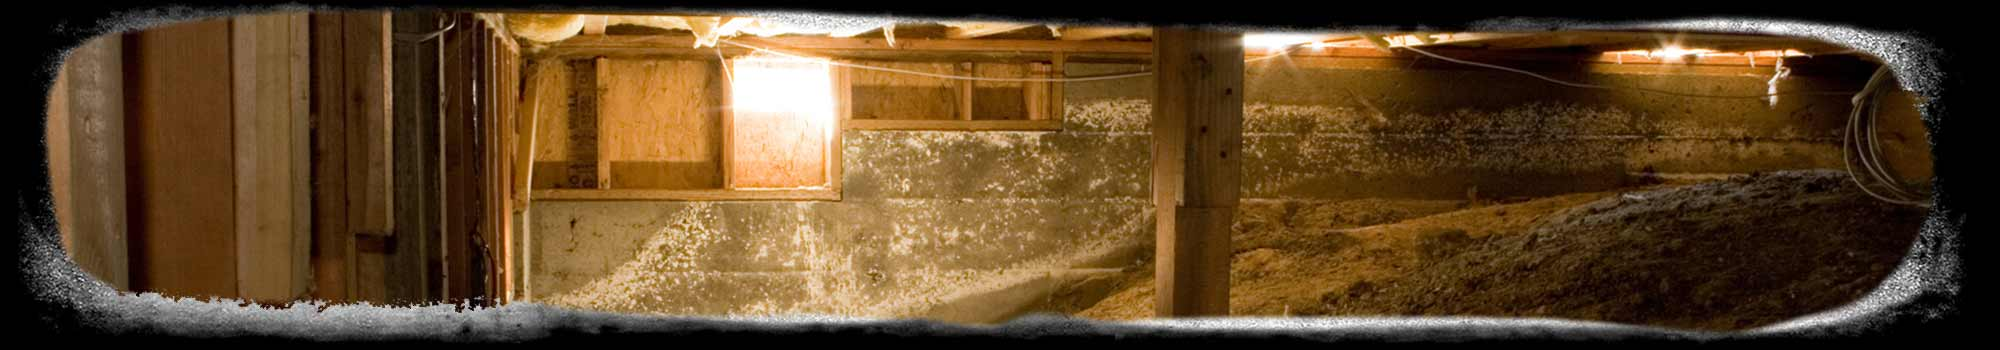 Bloom Crawl Space Services